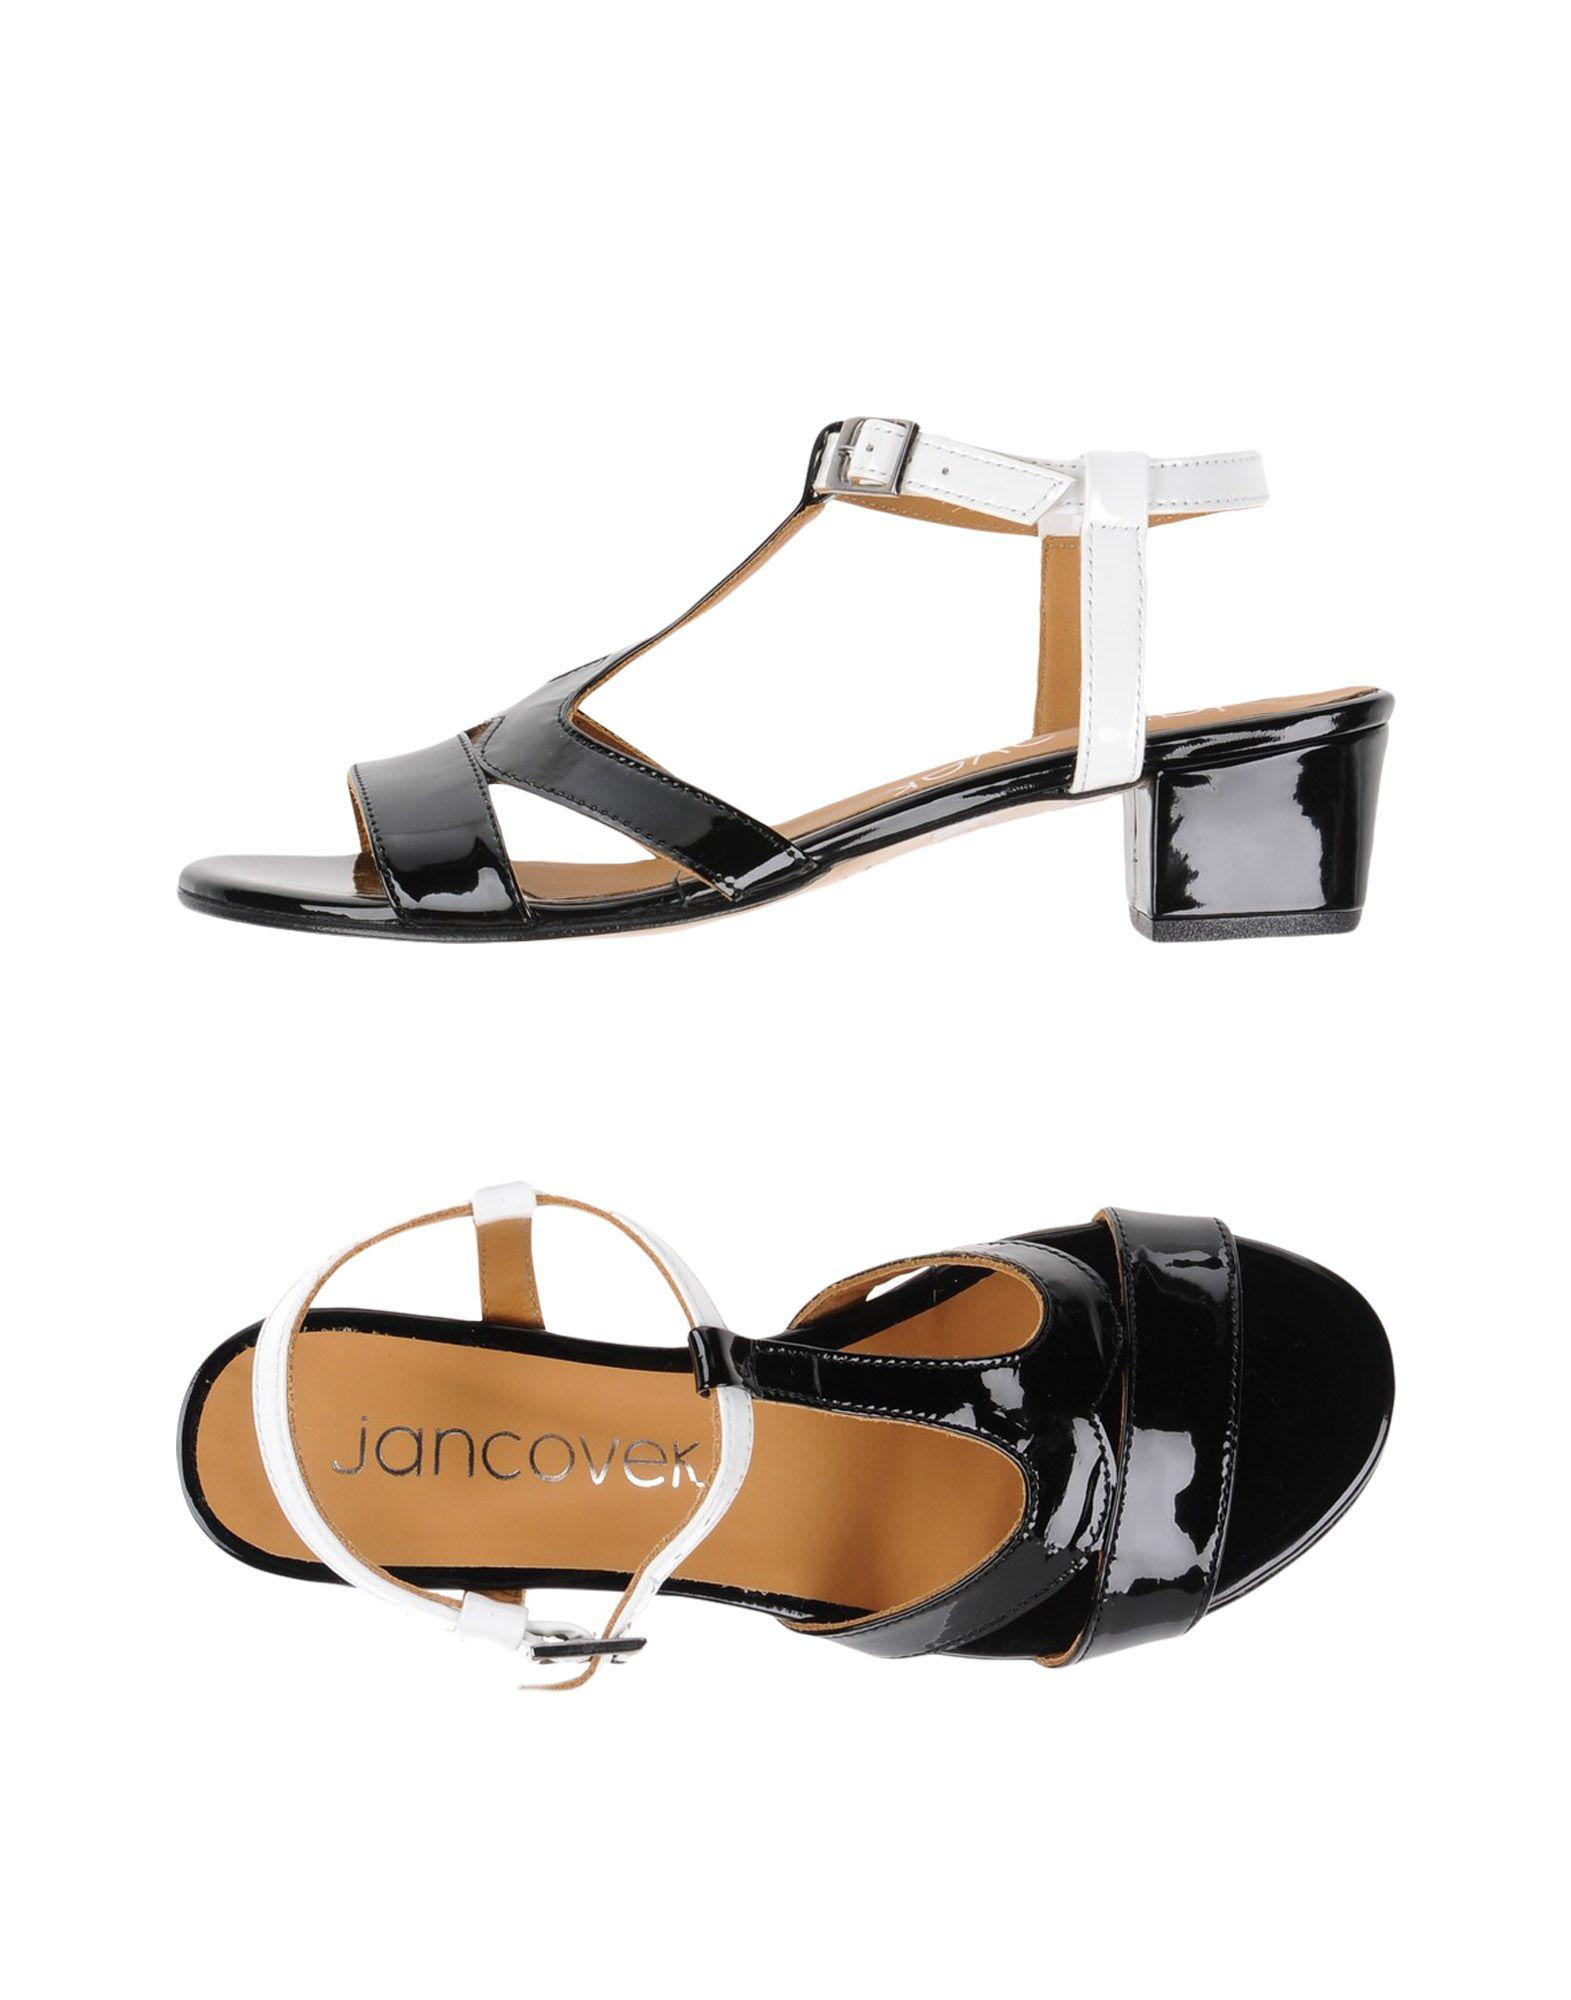 free shipping pay with visa amazon cheap price JANCOVEK Sandals 2014 newest online YshBmq